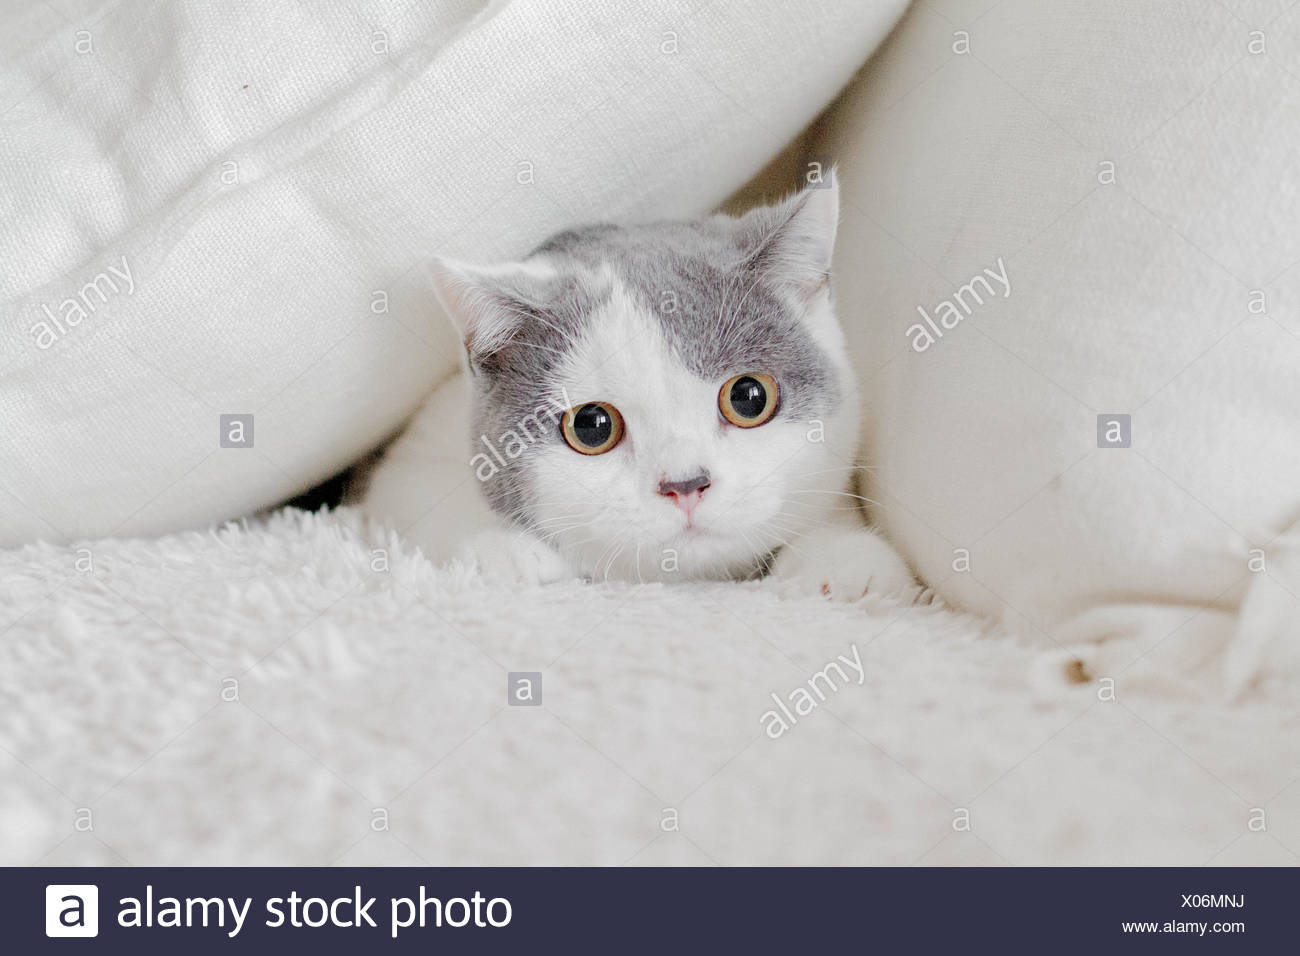 Cat hiding in pillows Stock Photo